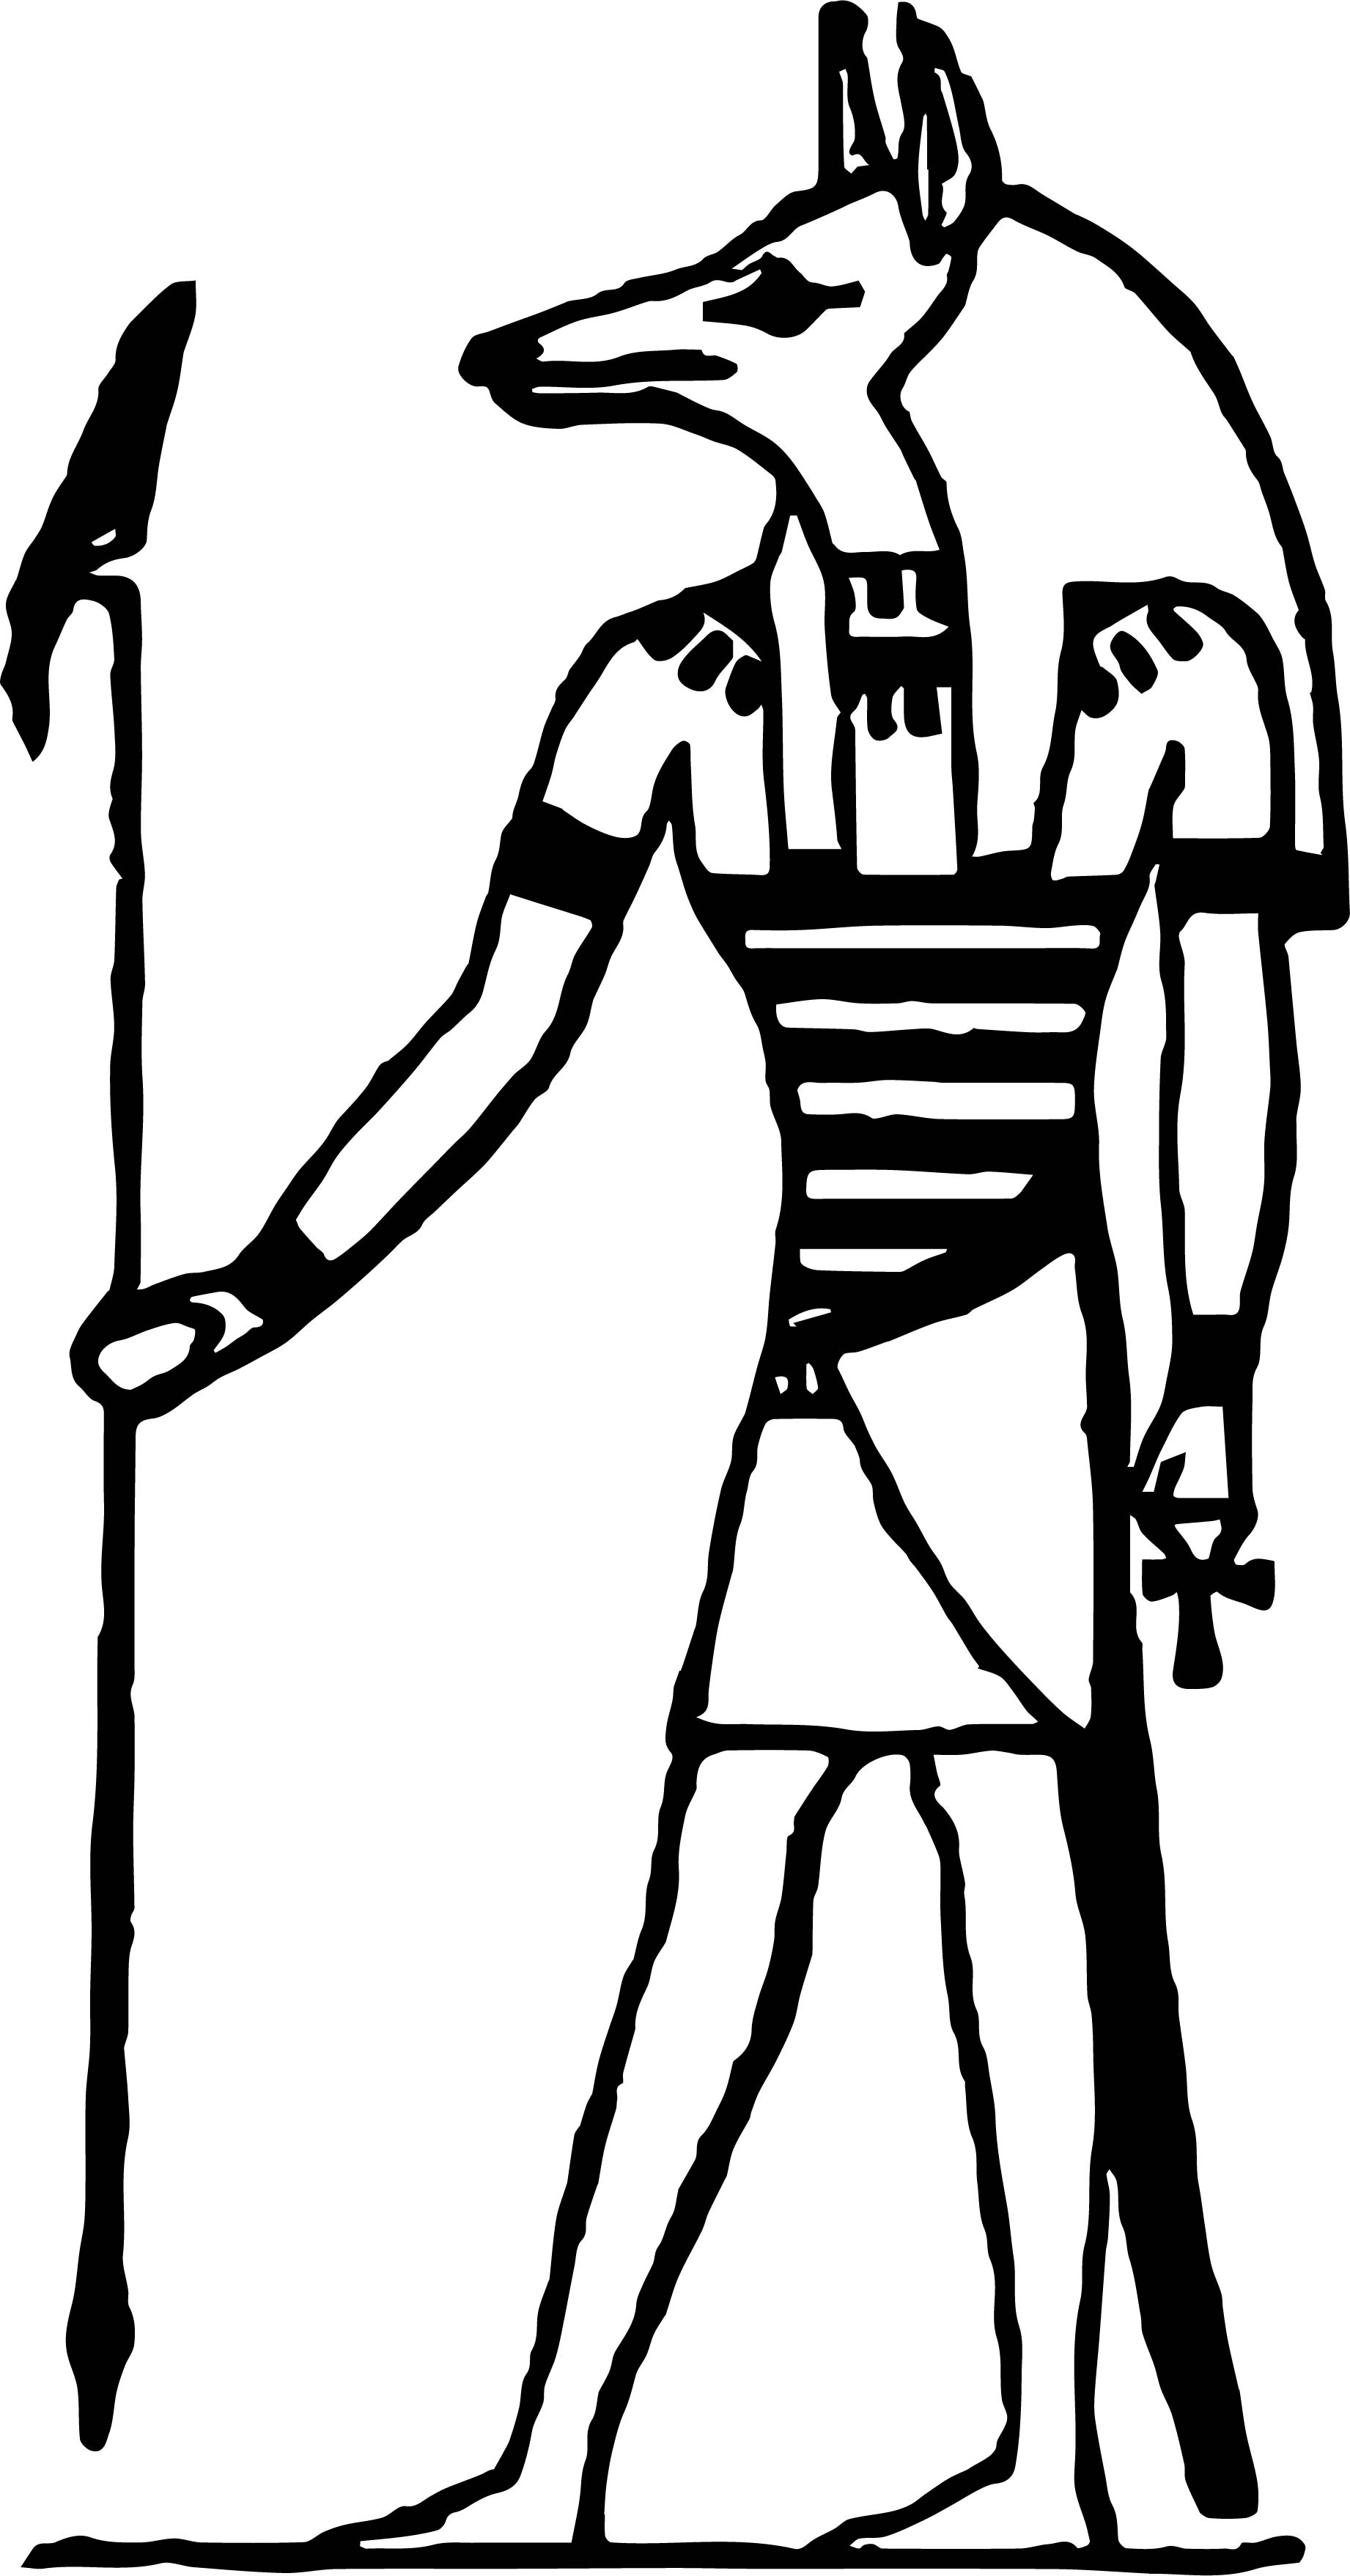 how to draw anubis step by step anubis clipart drawing pencil and in color anubis by step to how step anubis draw